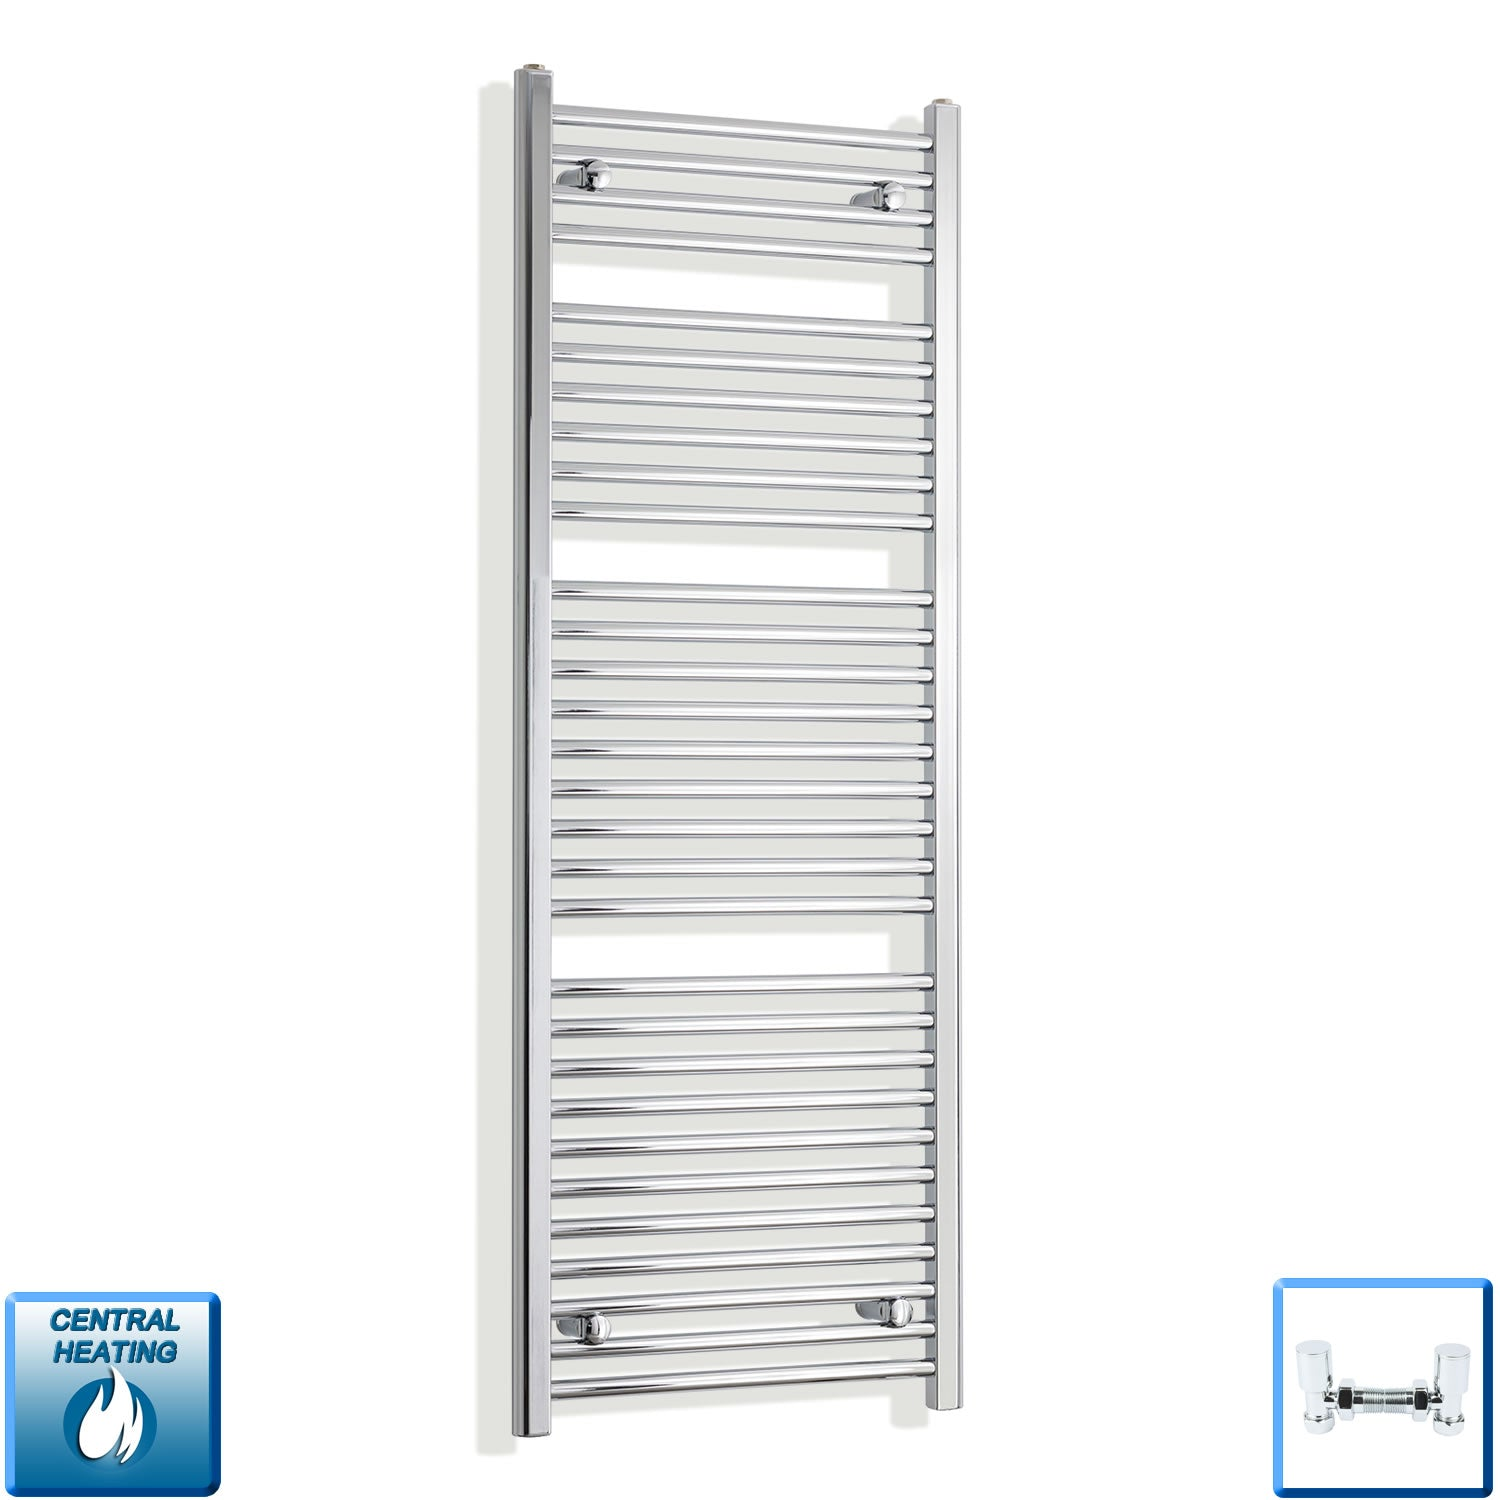 550mm Wide 1500mm High Straight Chrome Heated Towel Rail Radiator HTR Central Heating,With Angled Valve